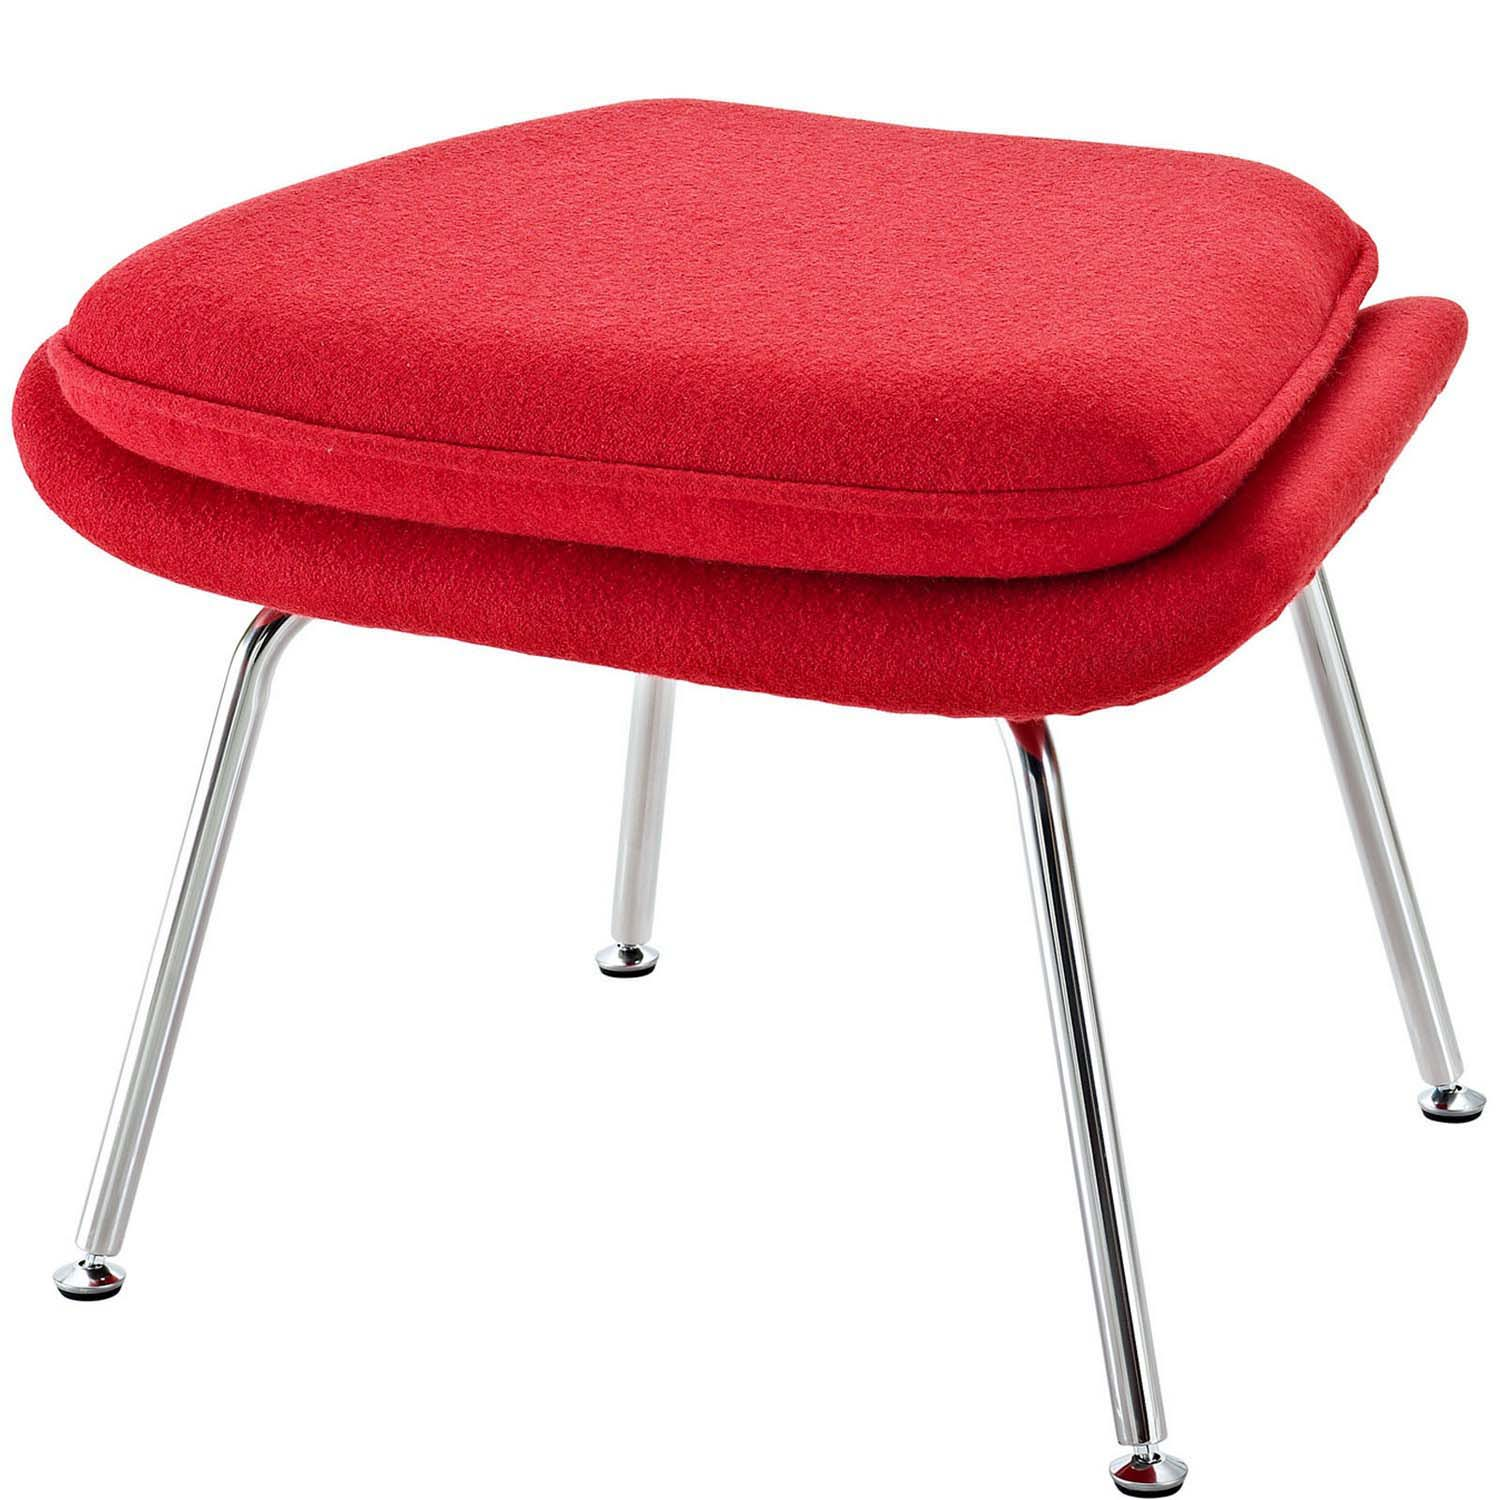 Modway W Fabric Lounge Chair - Red